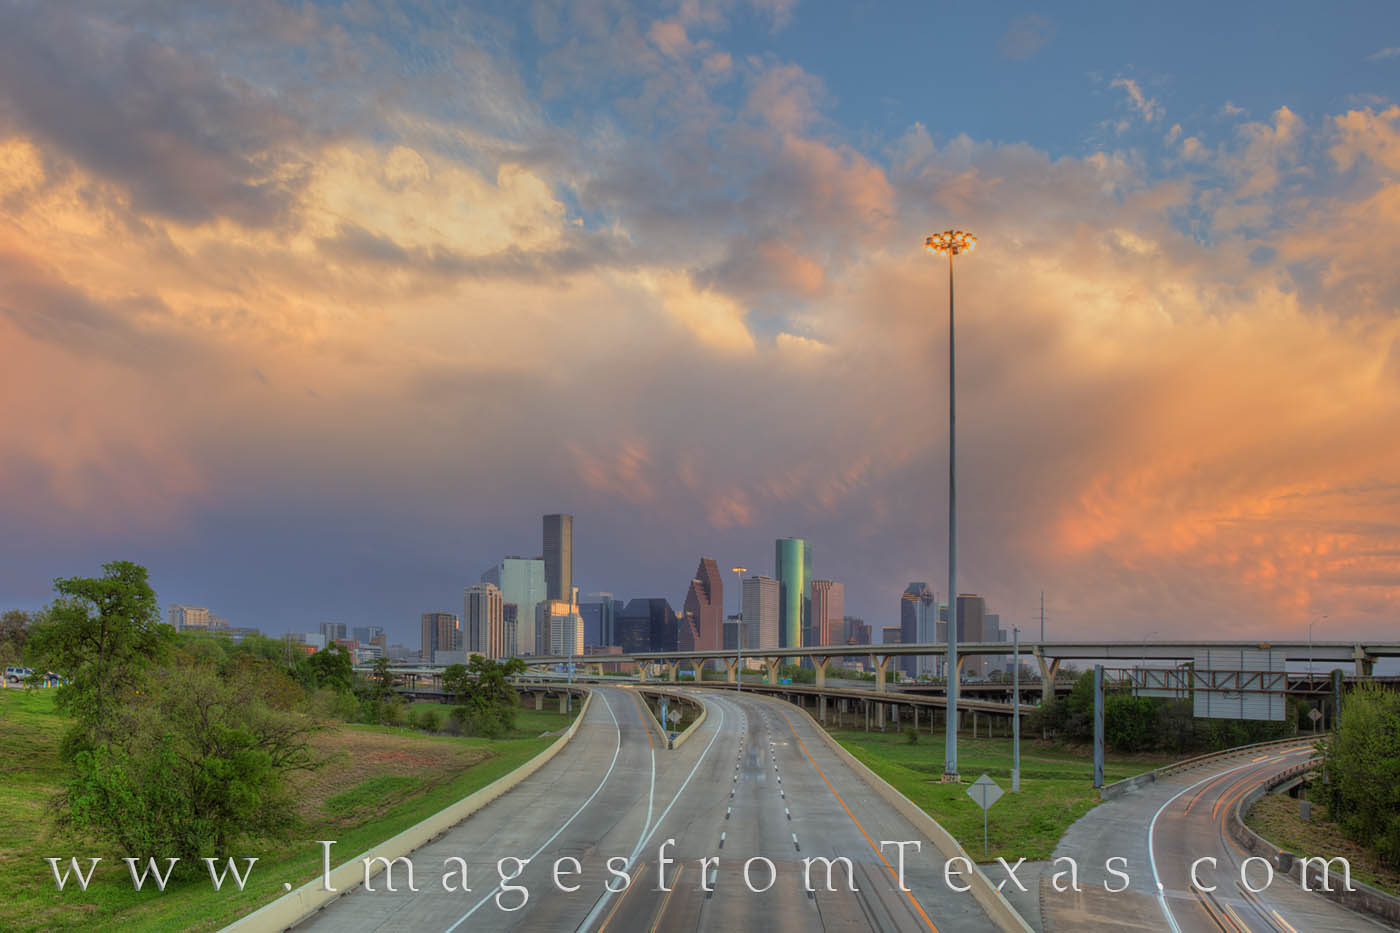 After afternoon storms had passed through downtown Houston, the skies began to clear as the sun setting in the west lit up the...